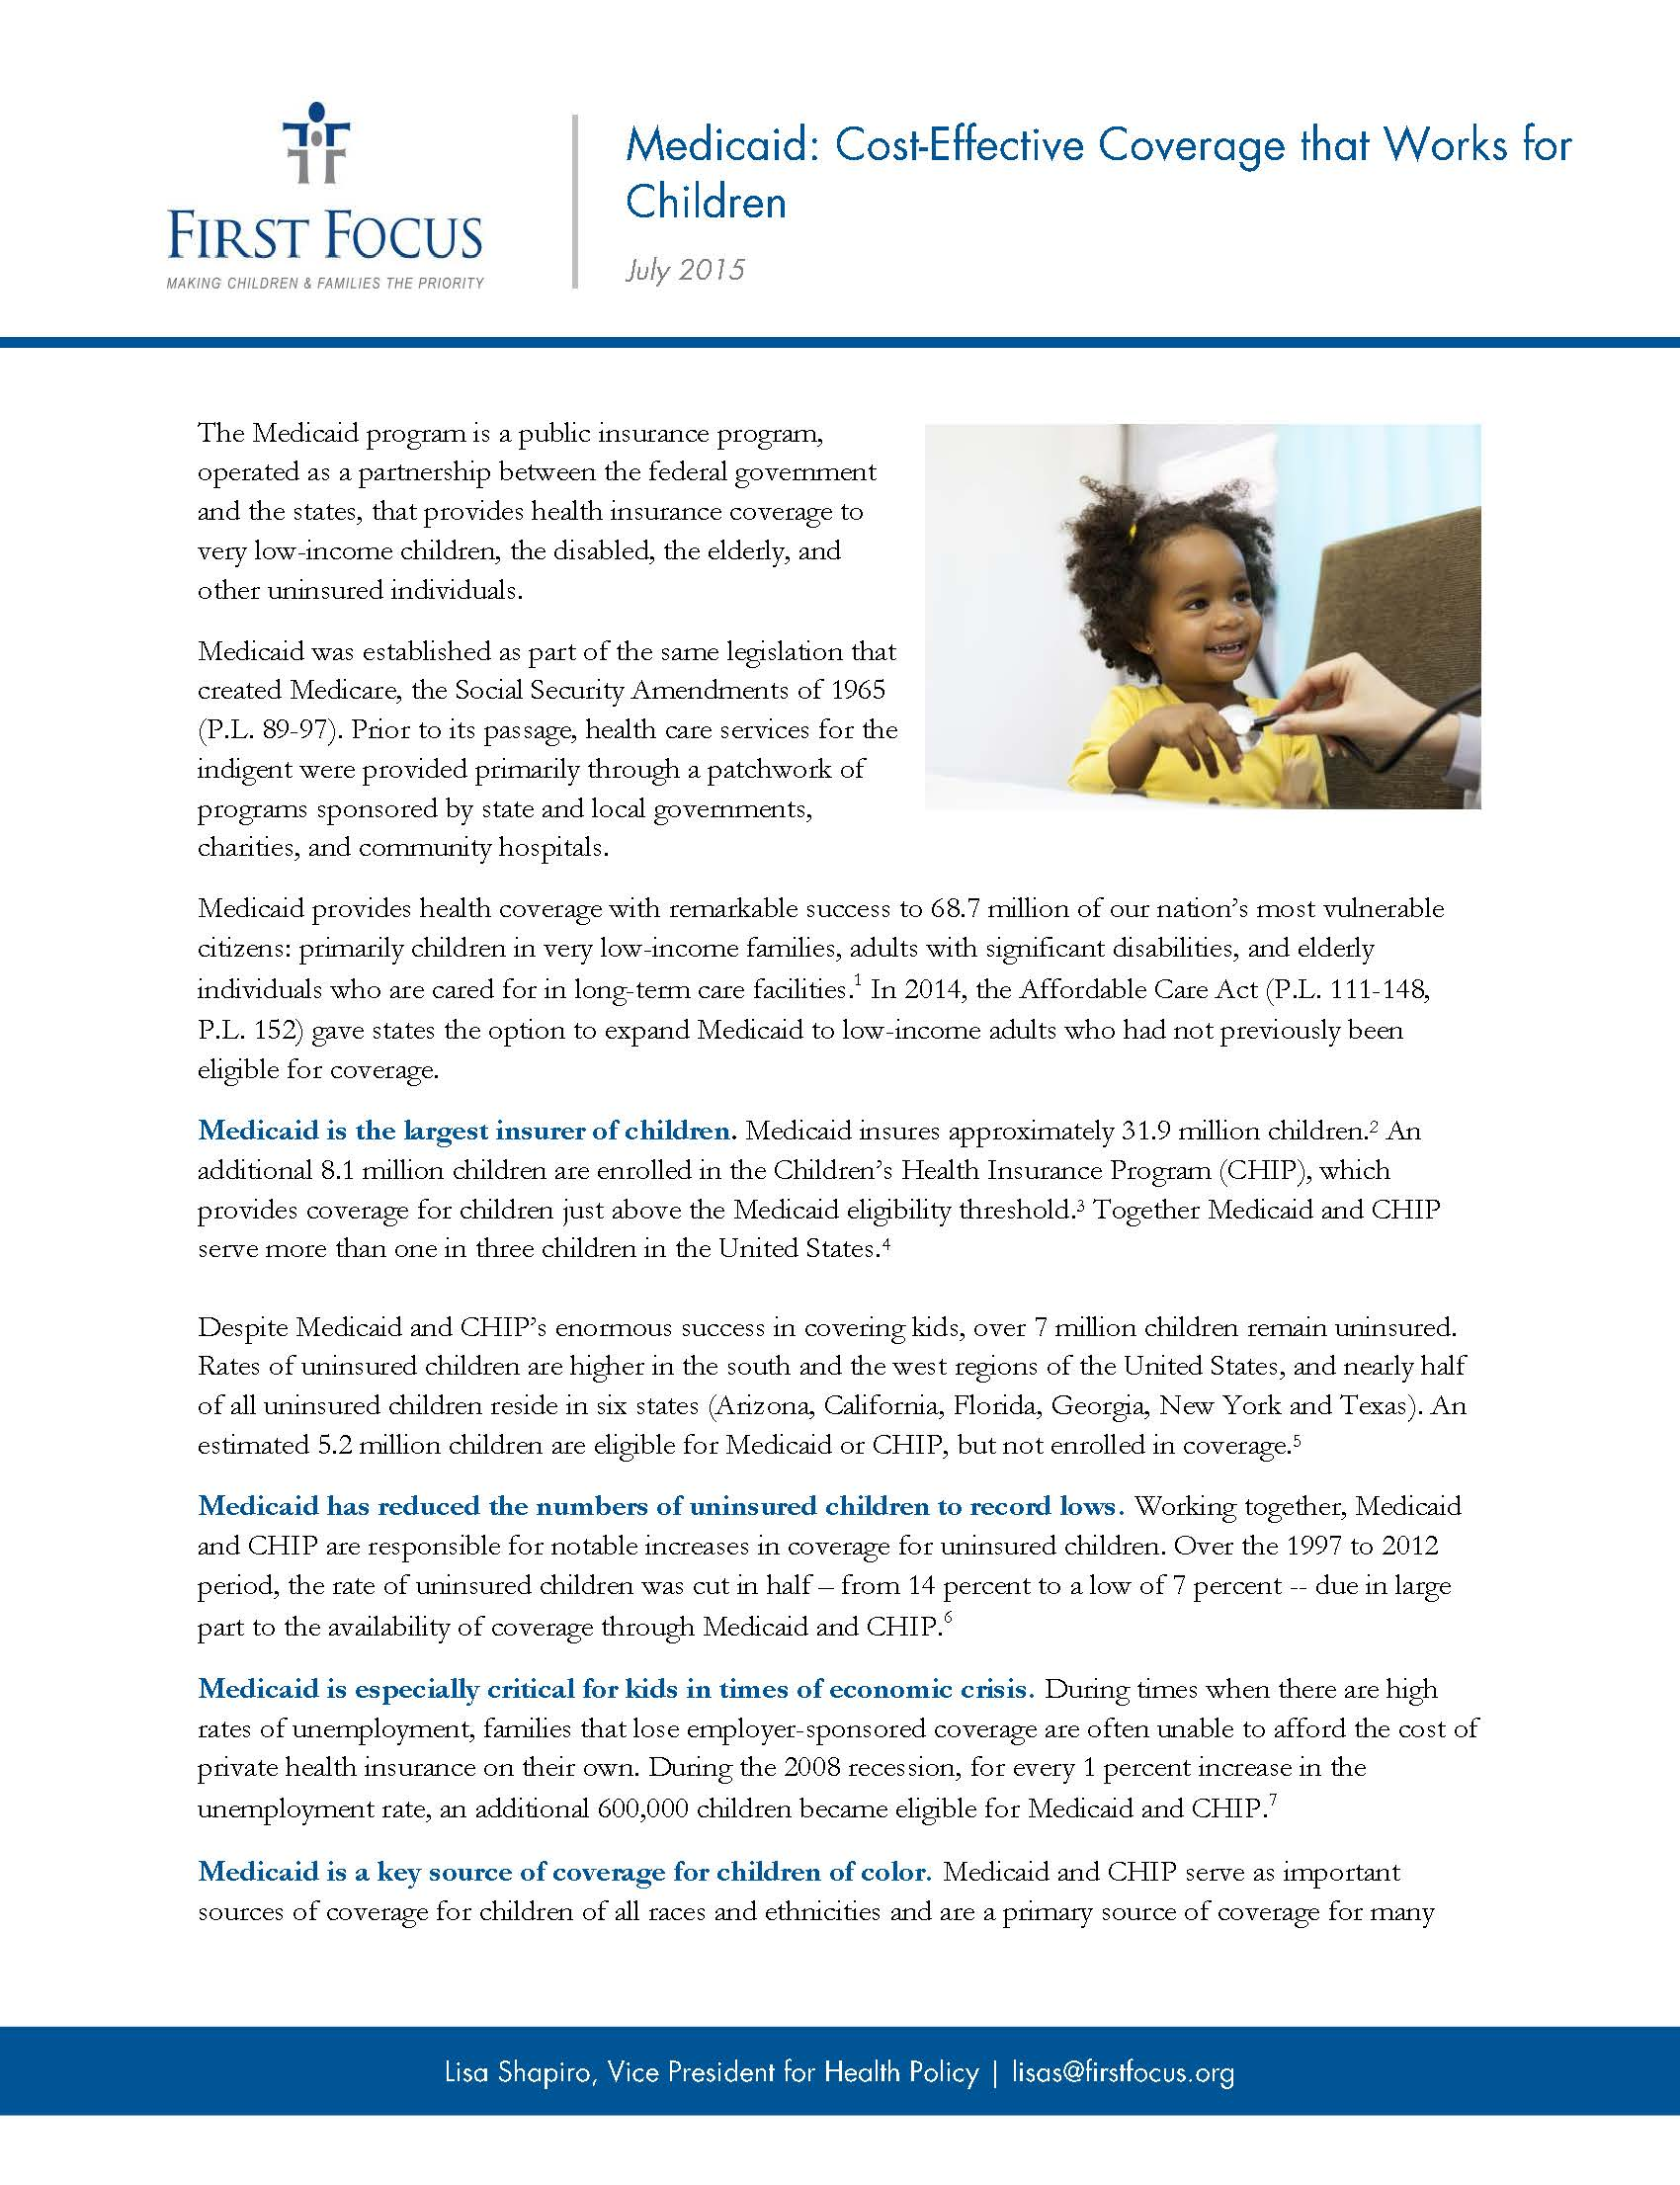 Medicaid Cost-Effective Coverage that Works for Children_Page_1